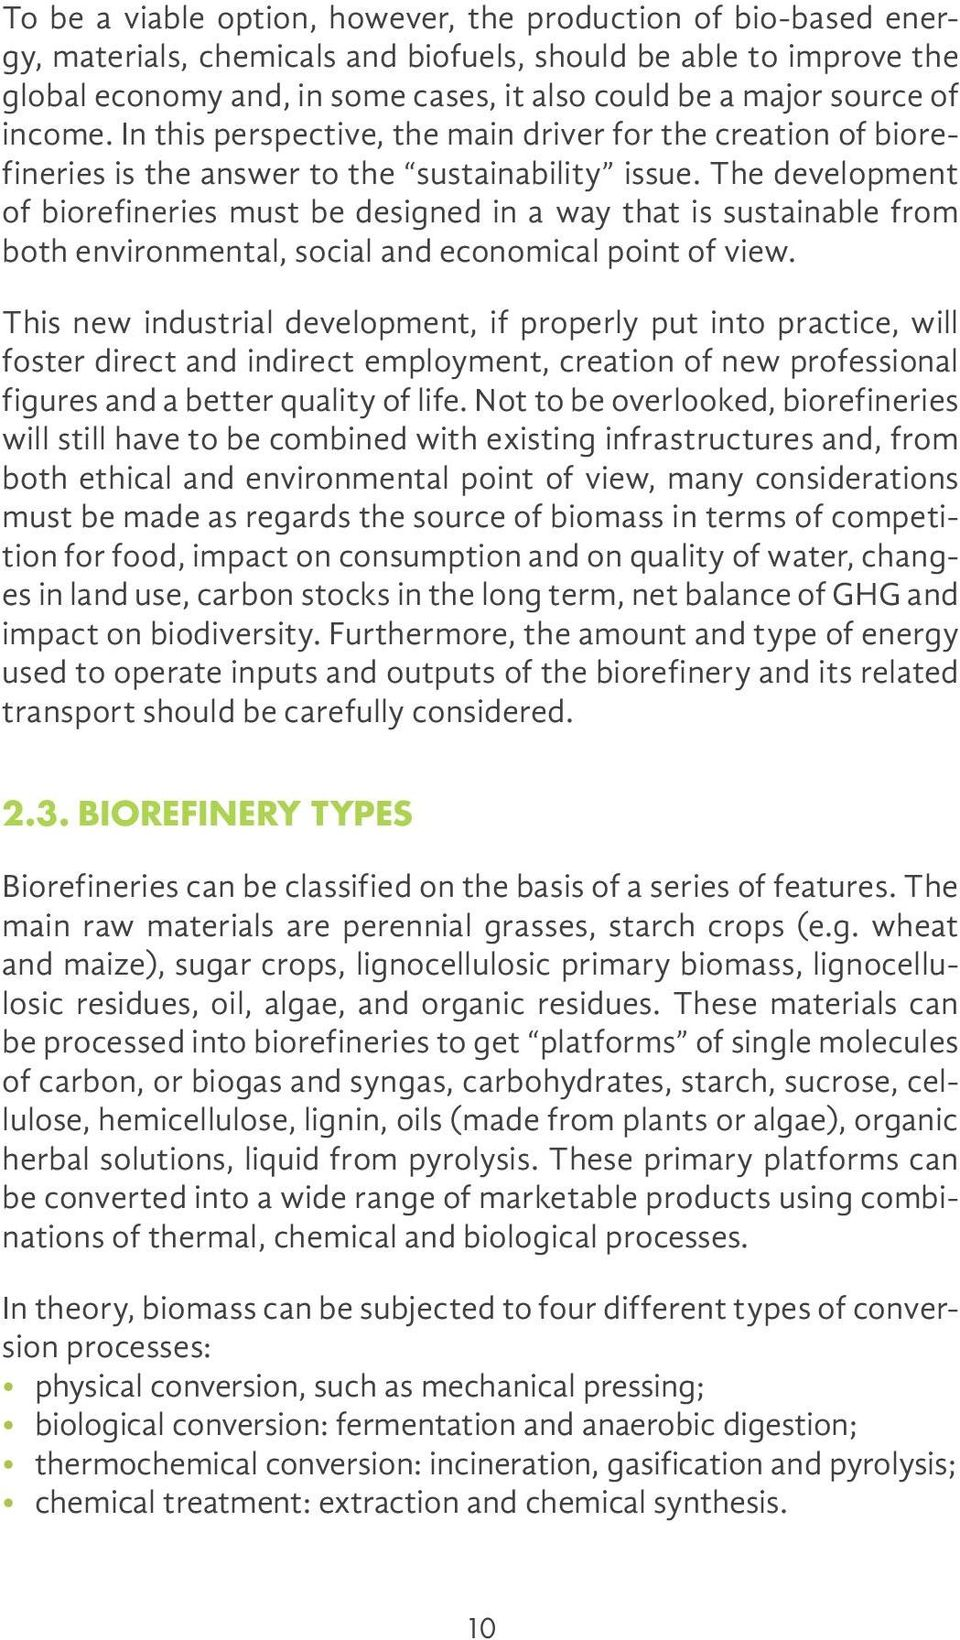 The development of biorefineries must be designed in a way that is sustainable from both environmental, social and economical point of view.